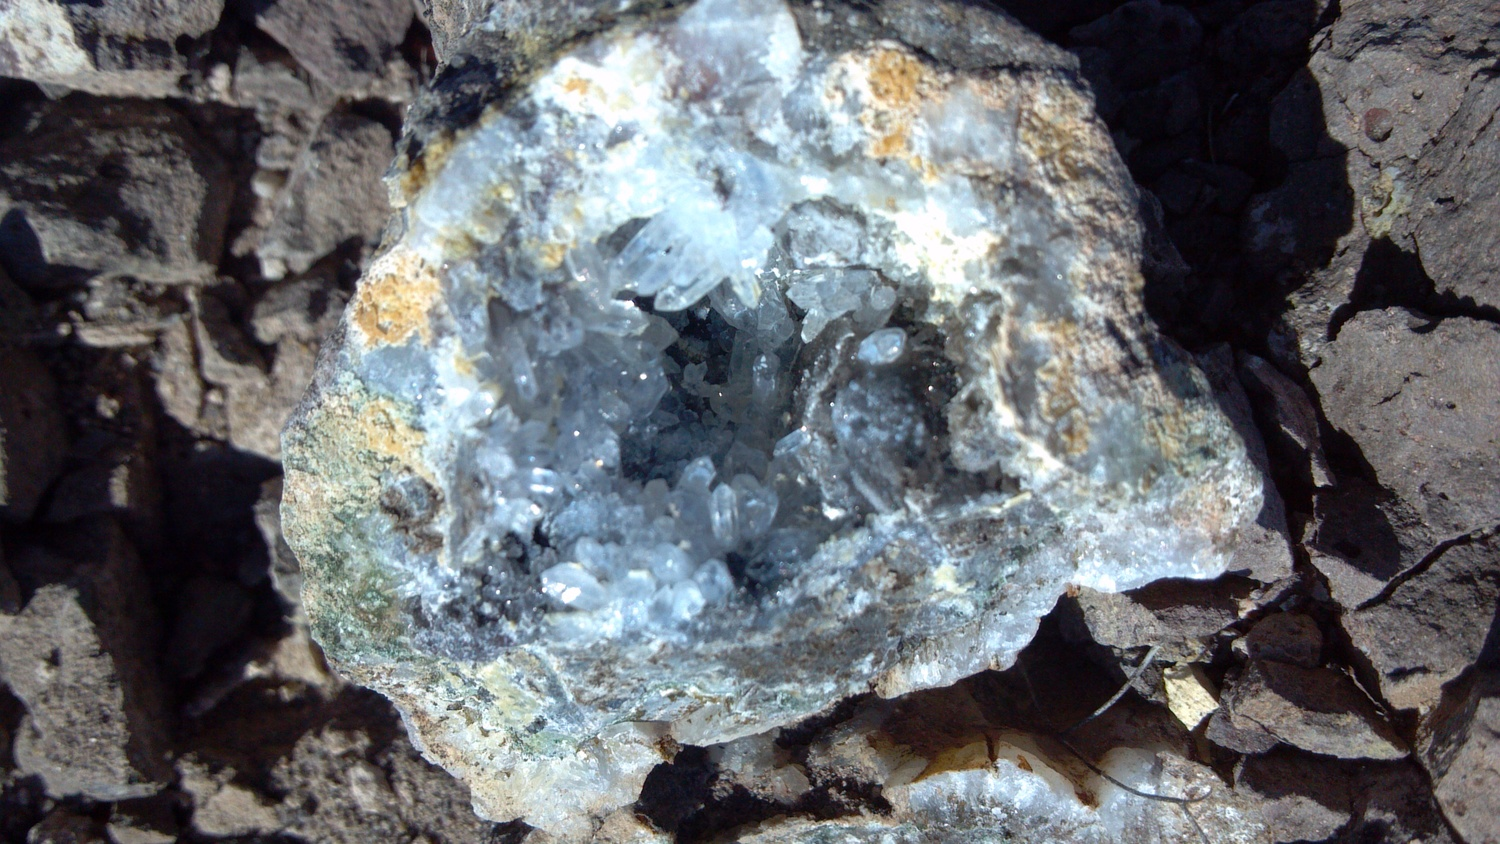 A geode in the Bullhead City Strewn Field. Photo Larry Atkins